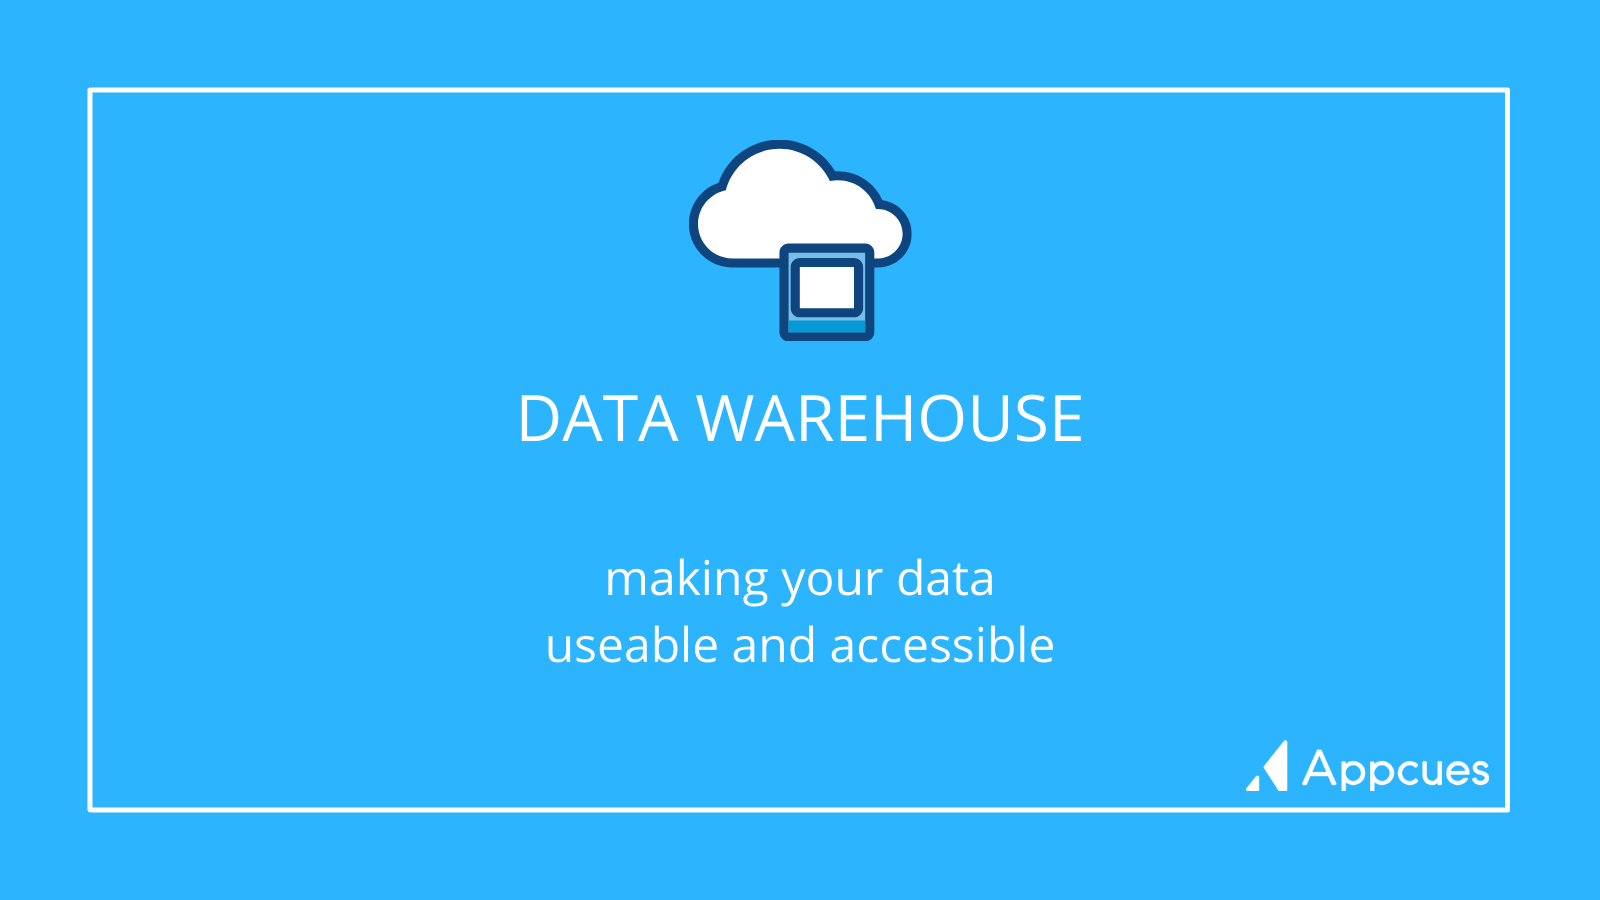 Data Warehouse: making your data useable and accessible